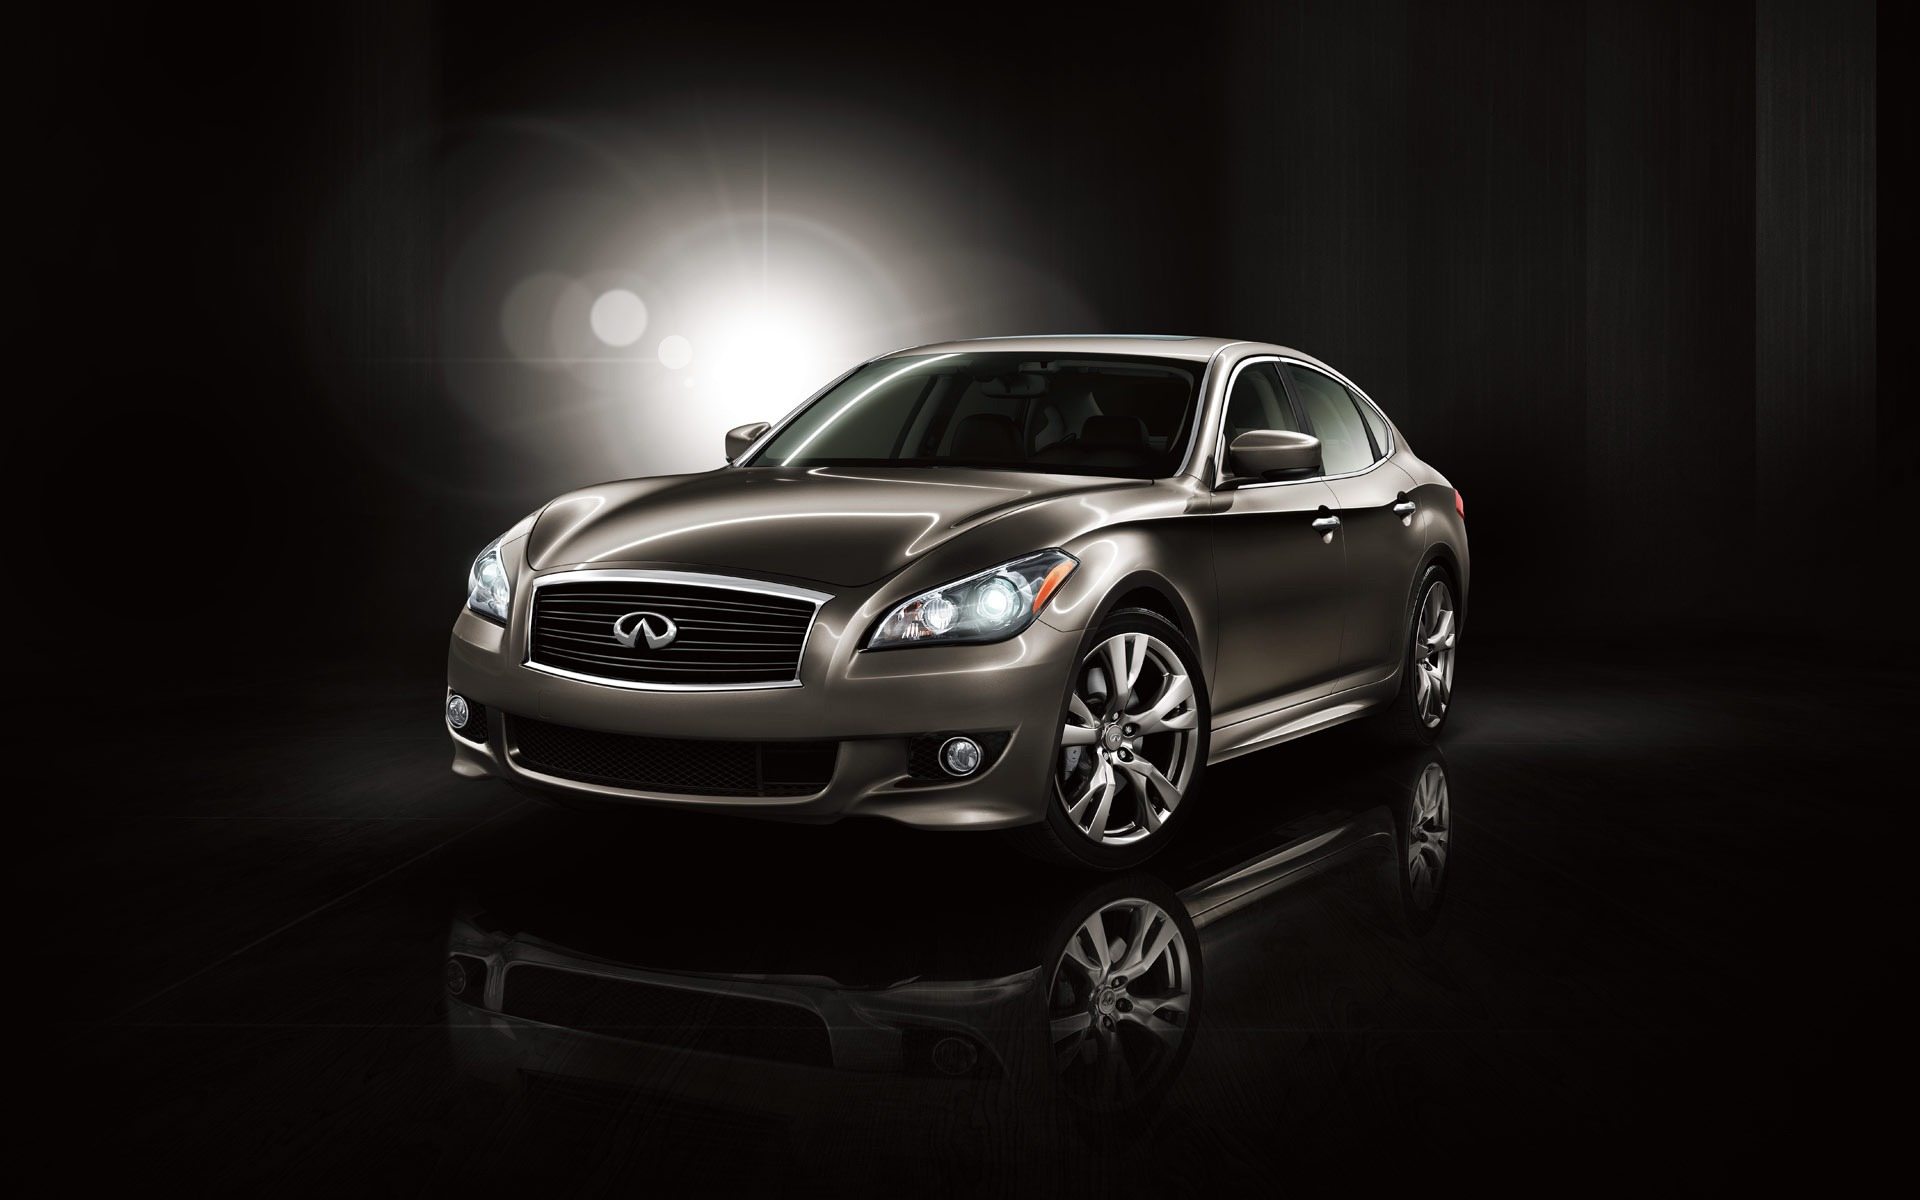 Infiniti Wallpapers and Background Images   stmednet 1920x1200